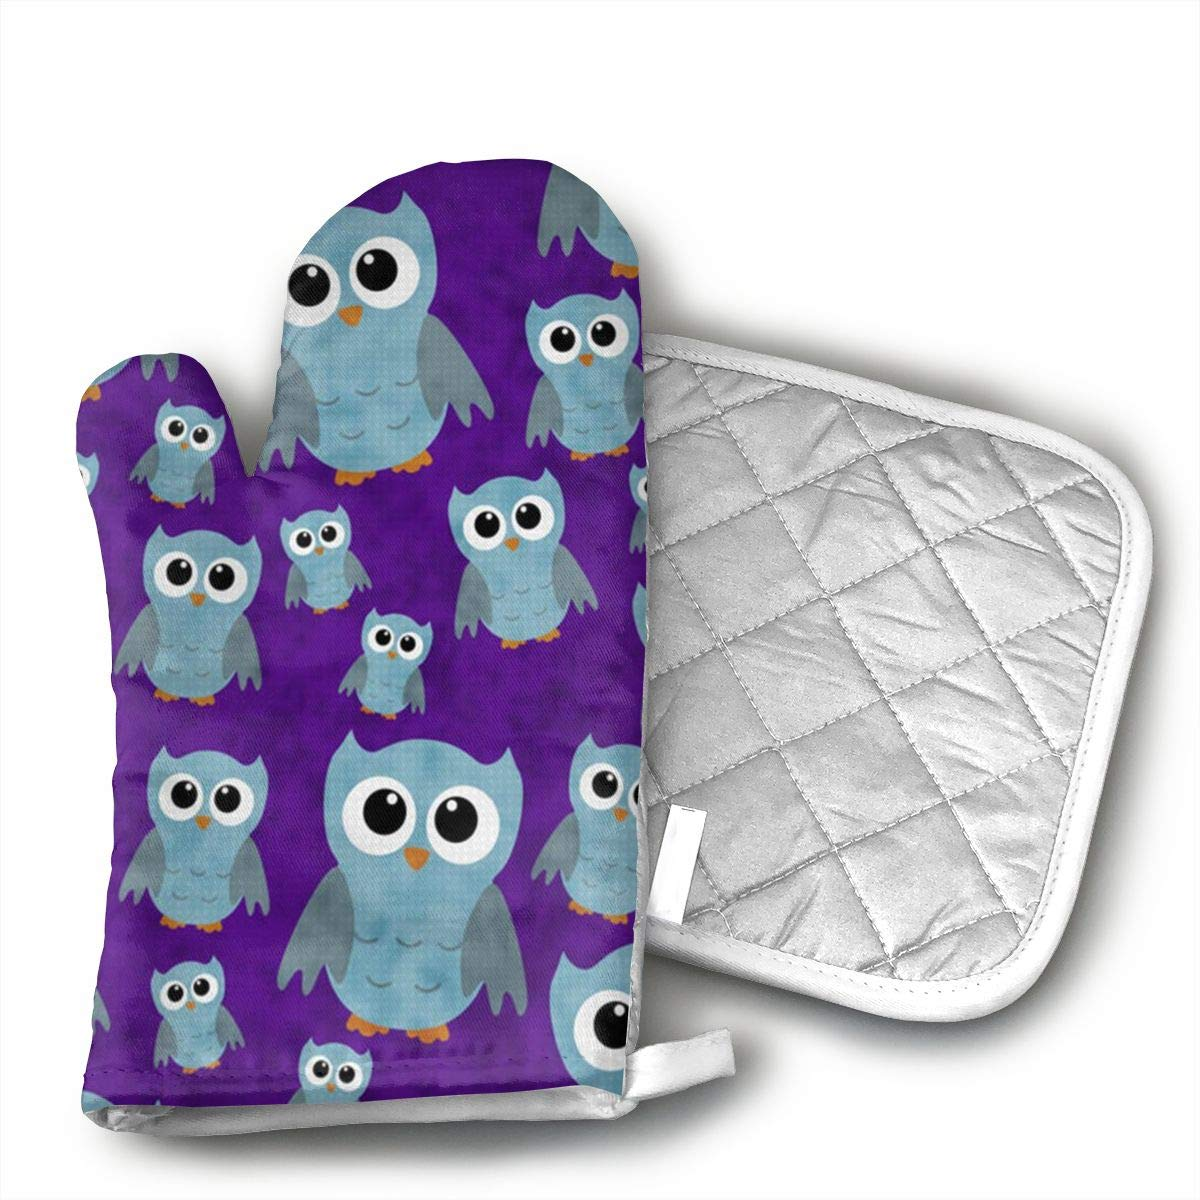 GDSJHVJNK ghhg Sky Owl Hand Drawn Oven Glove Heat Resistant Cooking Glove, Include A Insulated Glove and A Insulation Pad.